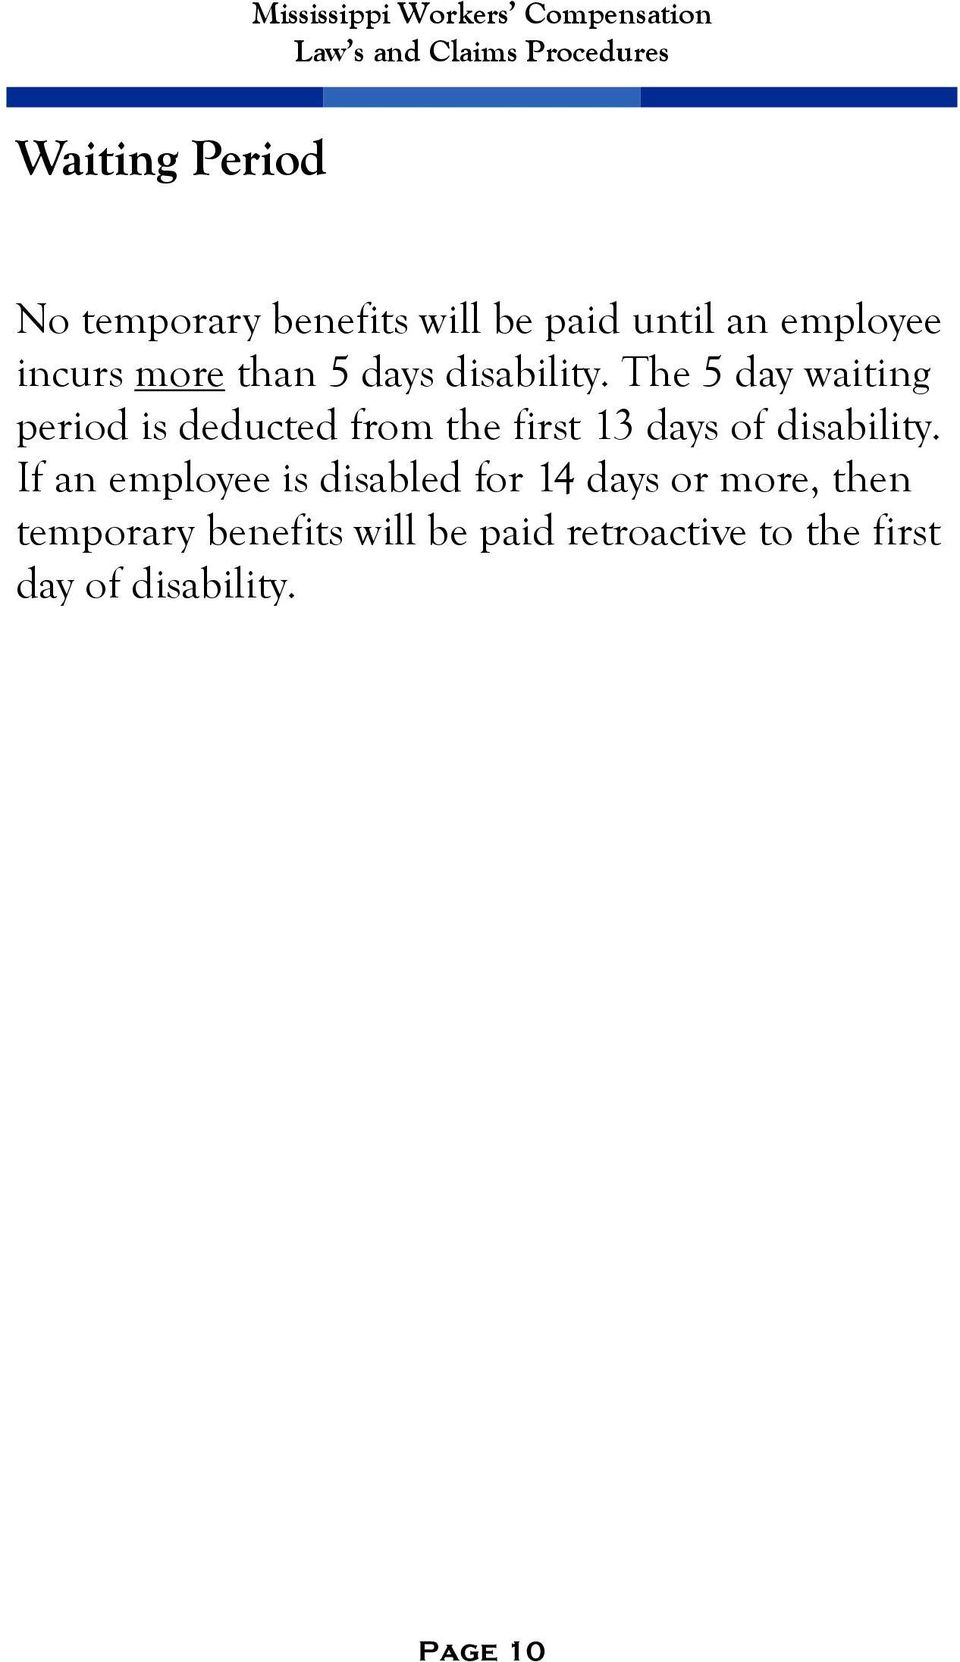 The 5 day waiting period is deducted from the first 13 days of disability.